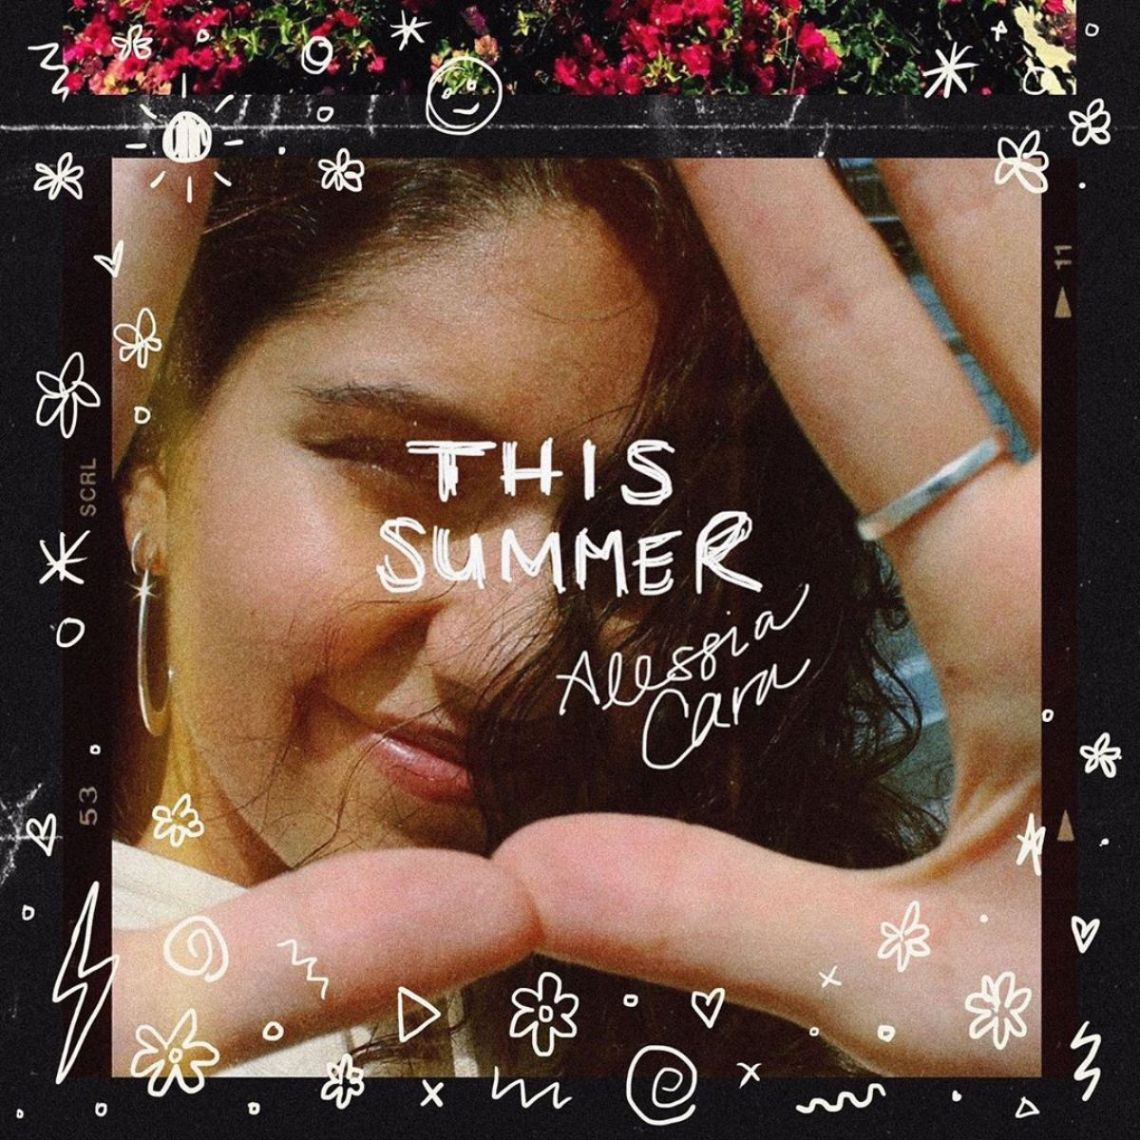 Alessia Cara - This Summer [EP] Lyrics.jpg